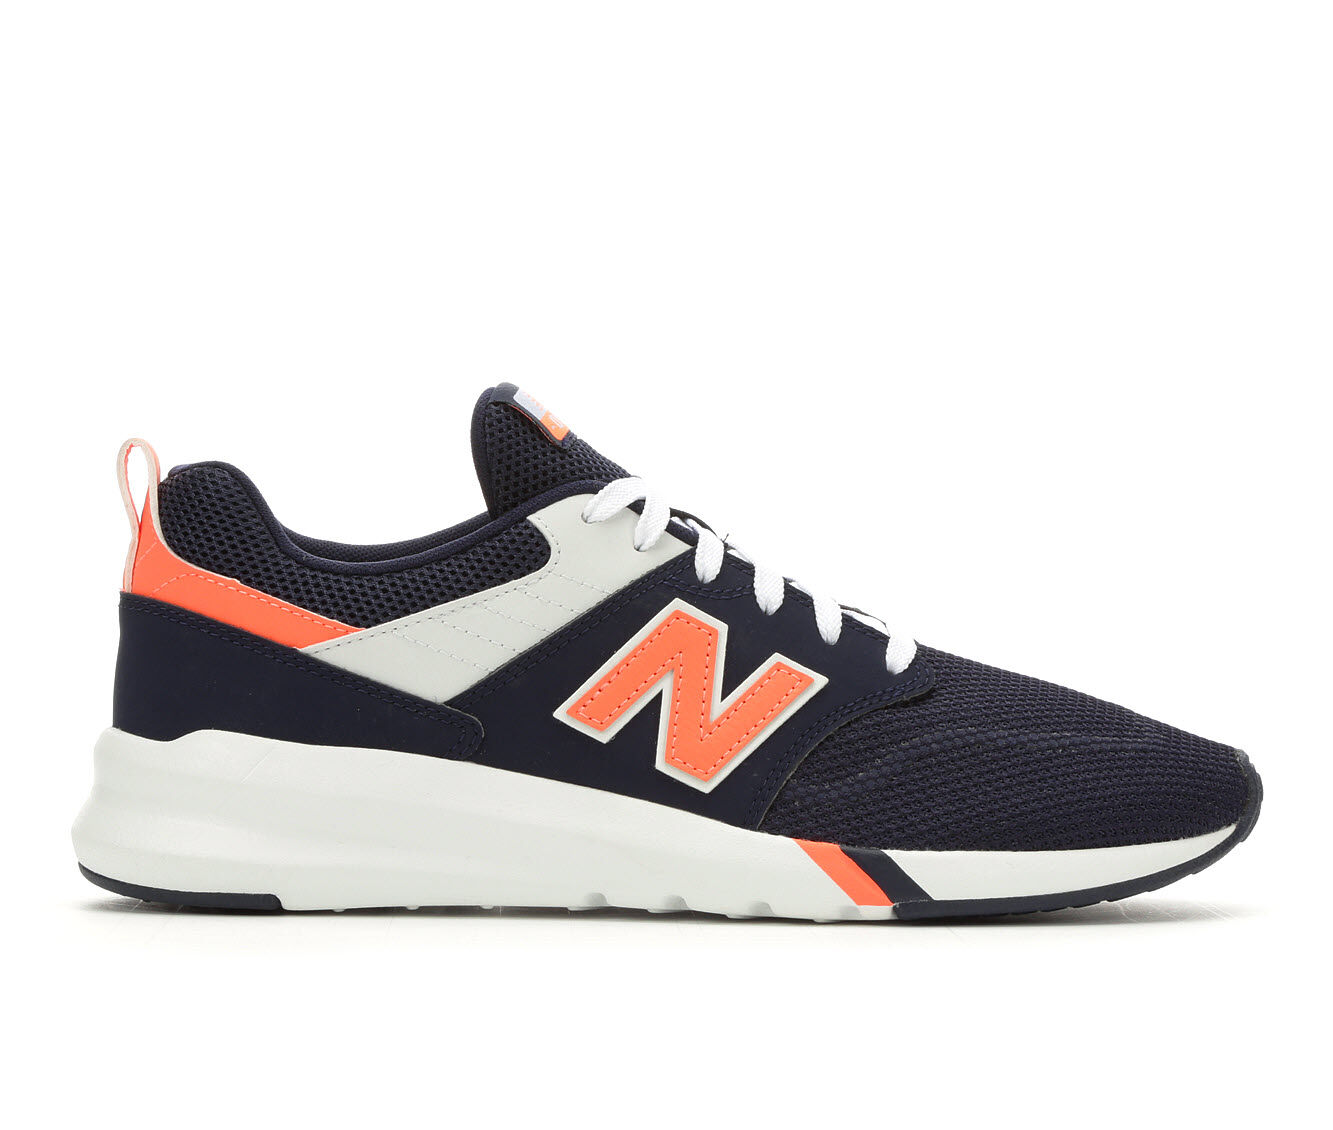 where can i buy new balance shoes near